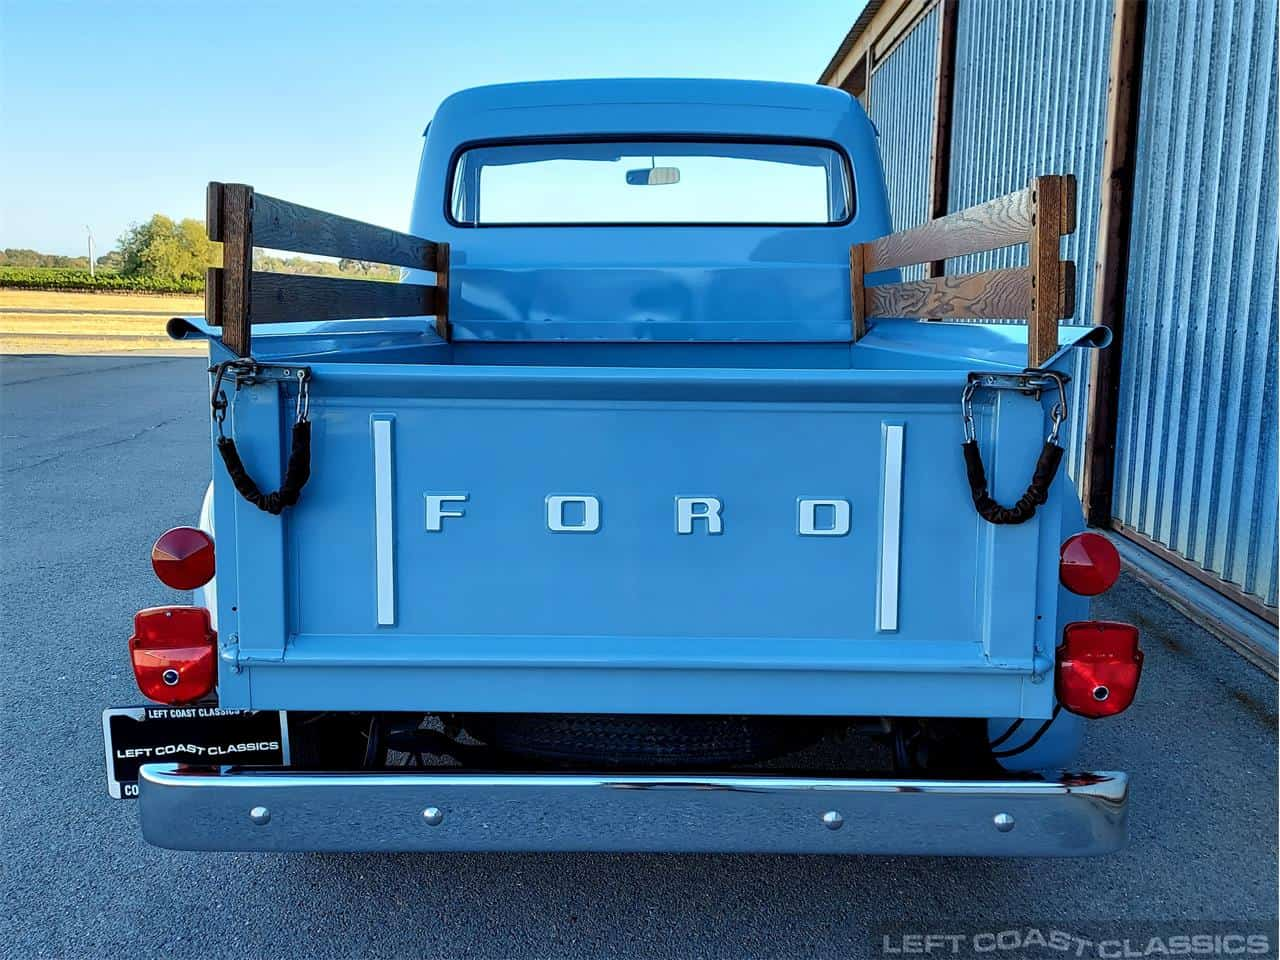 pickup, Pick of the Day: 1954 Ford F100, barn-found baby blue pickup, ClassicCars.com Journal